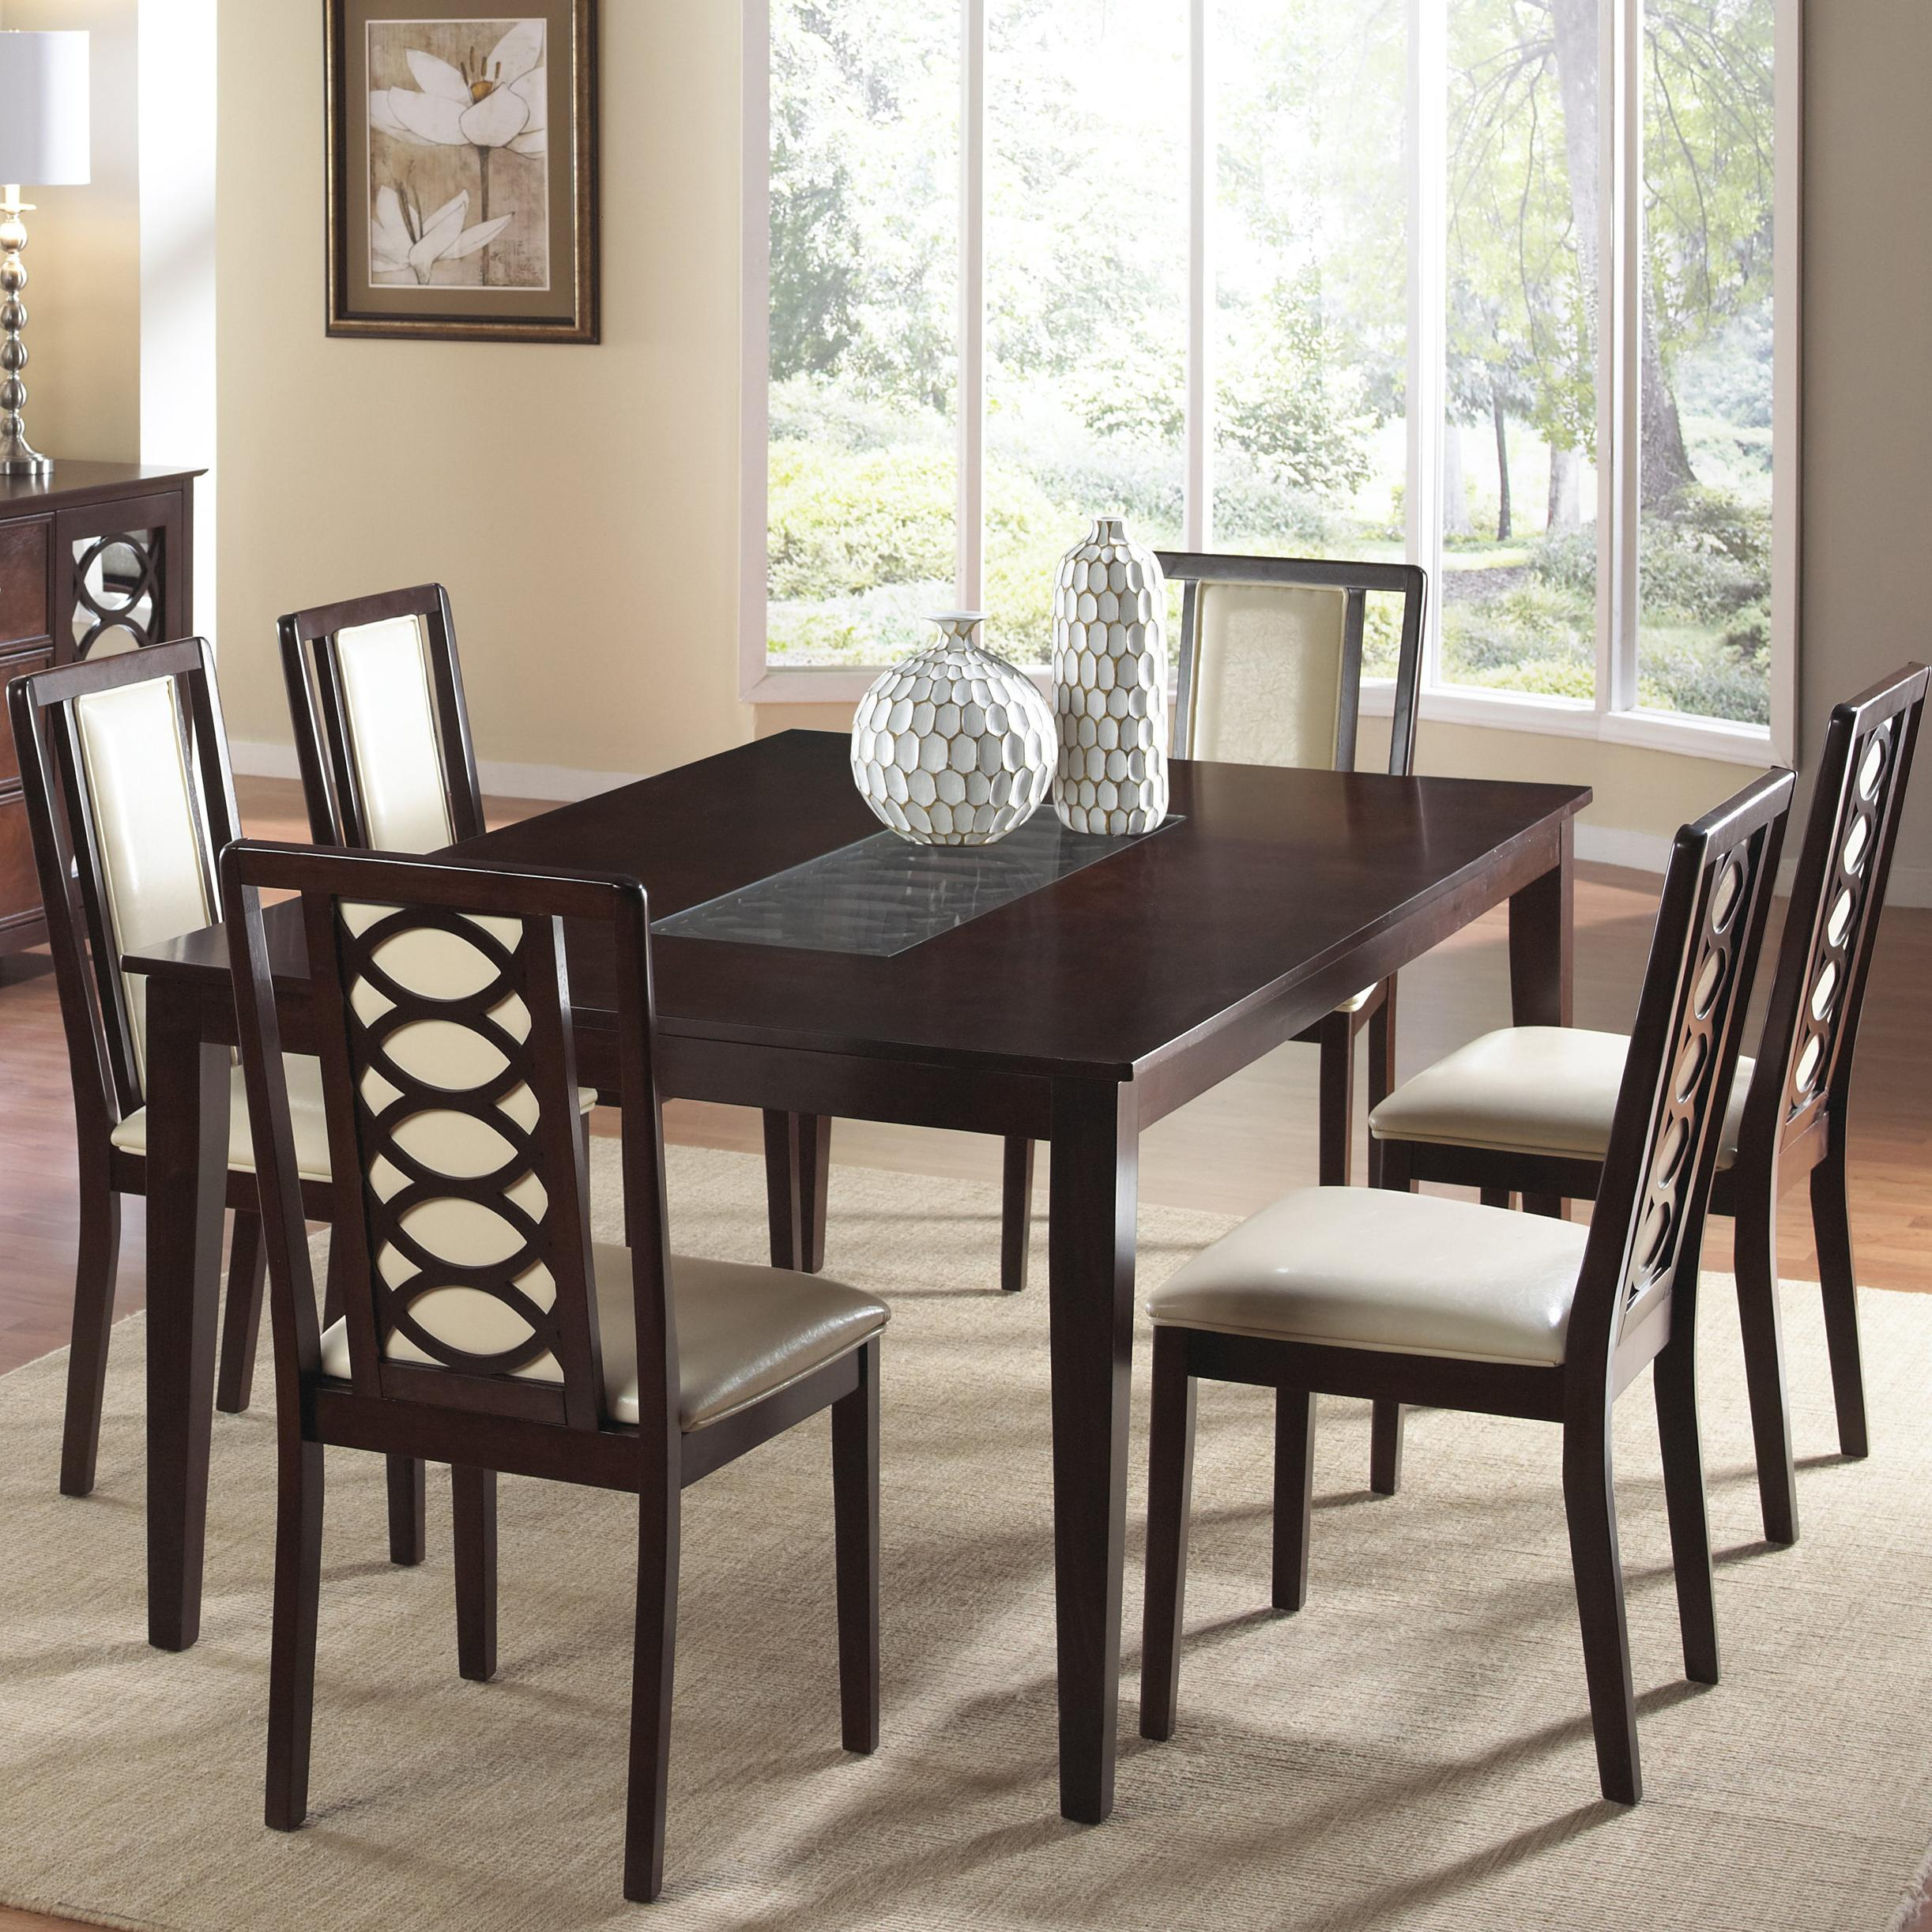 7 piece dining table and chair set by cramco inc wolf and gardiner wolf furniture. Black Bedroom Furniture Sets. Home Design Ideas